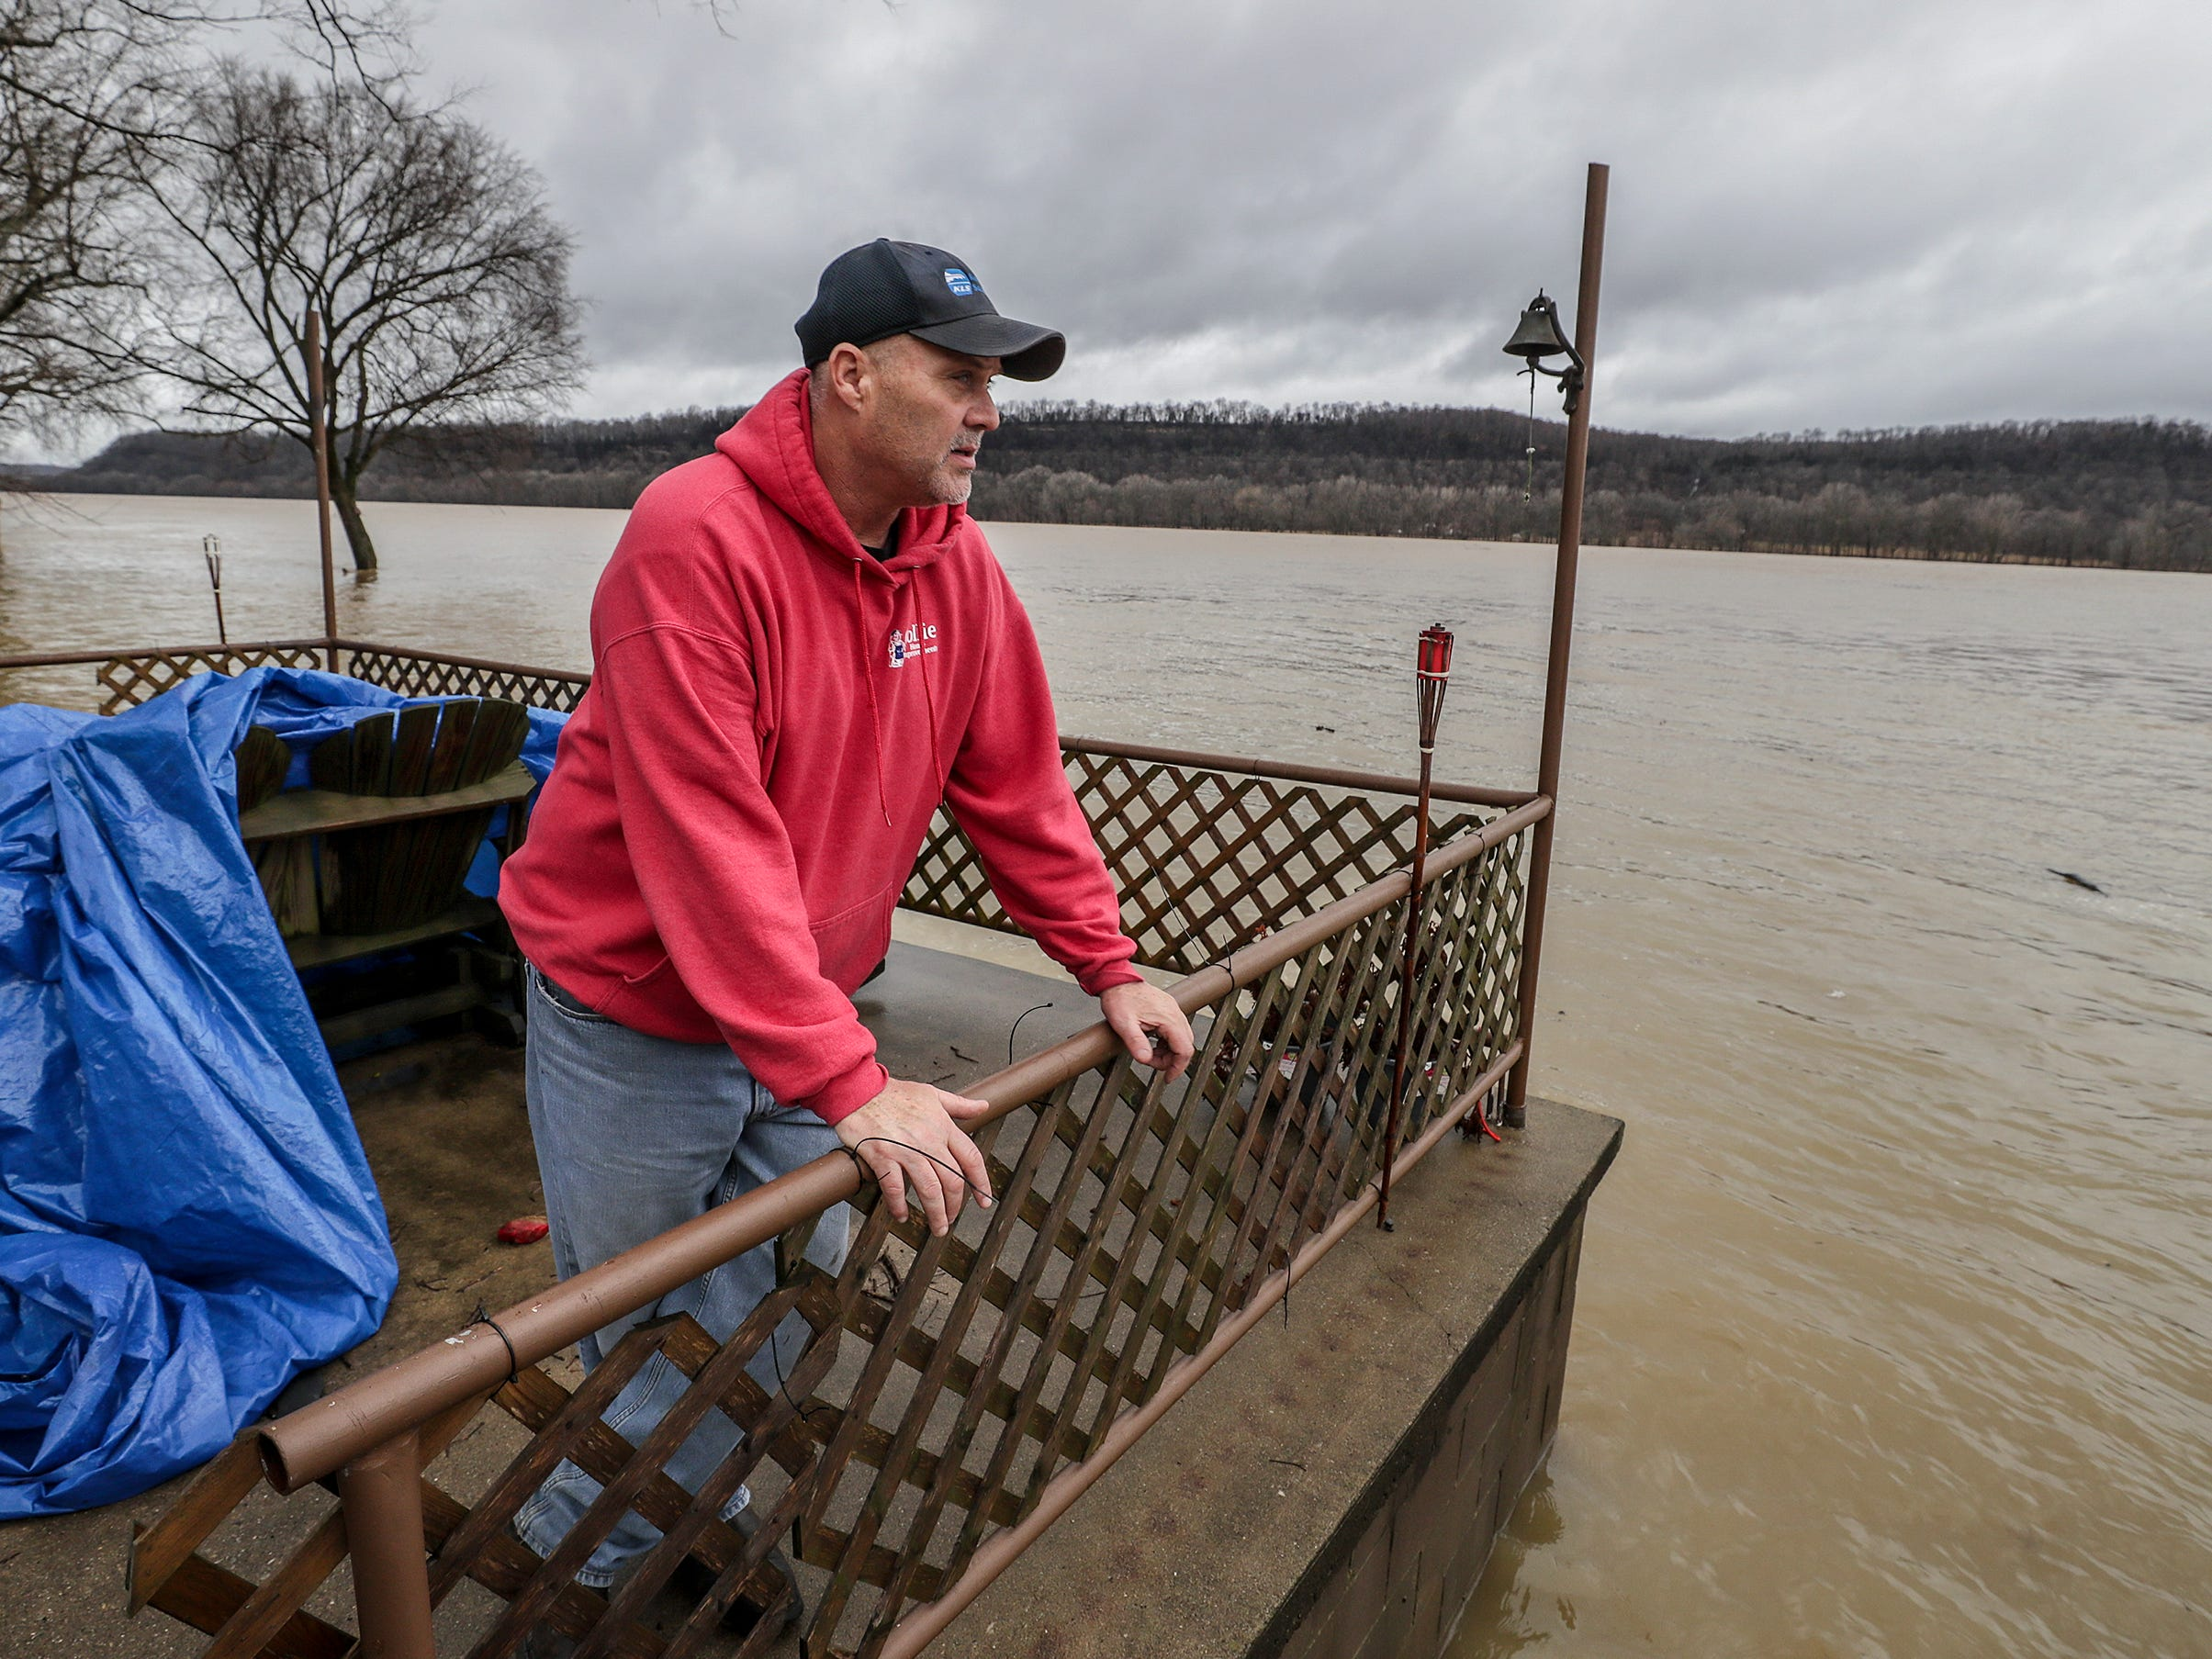 """West Point resident Mike Givins walks out along the back of his home.  """"Some times you have to pay Old Man River,"""" said Givins who is removing belongings from the lower level of his home in advance of the flooding.  The water is typically fifty yards from his back deck.February 12, 2019"""